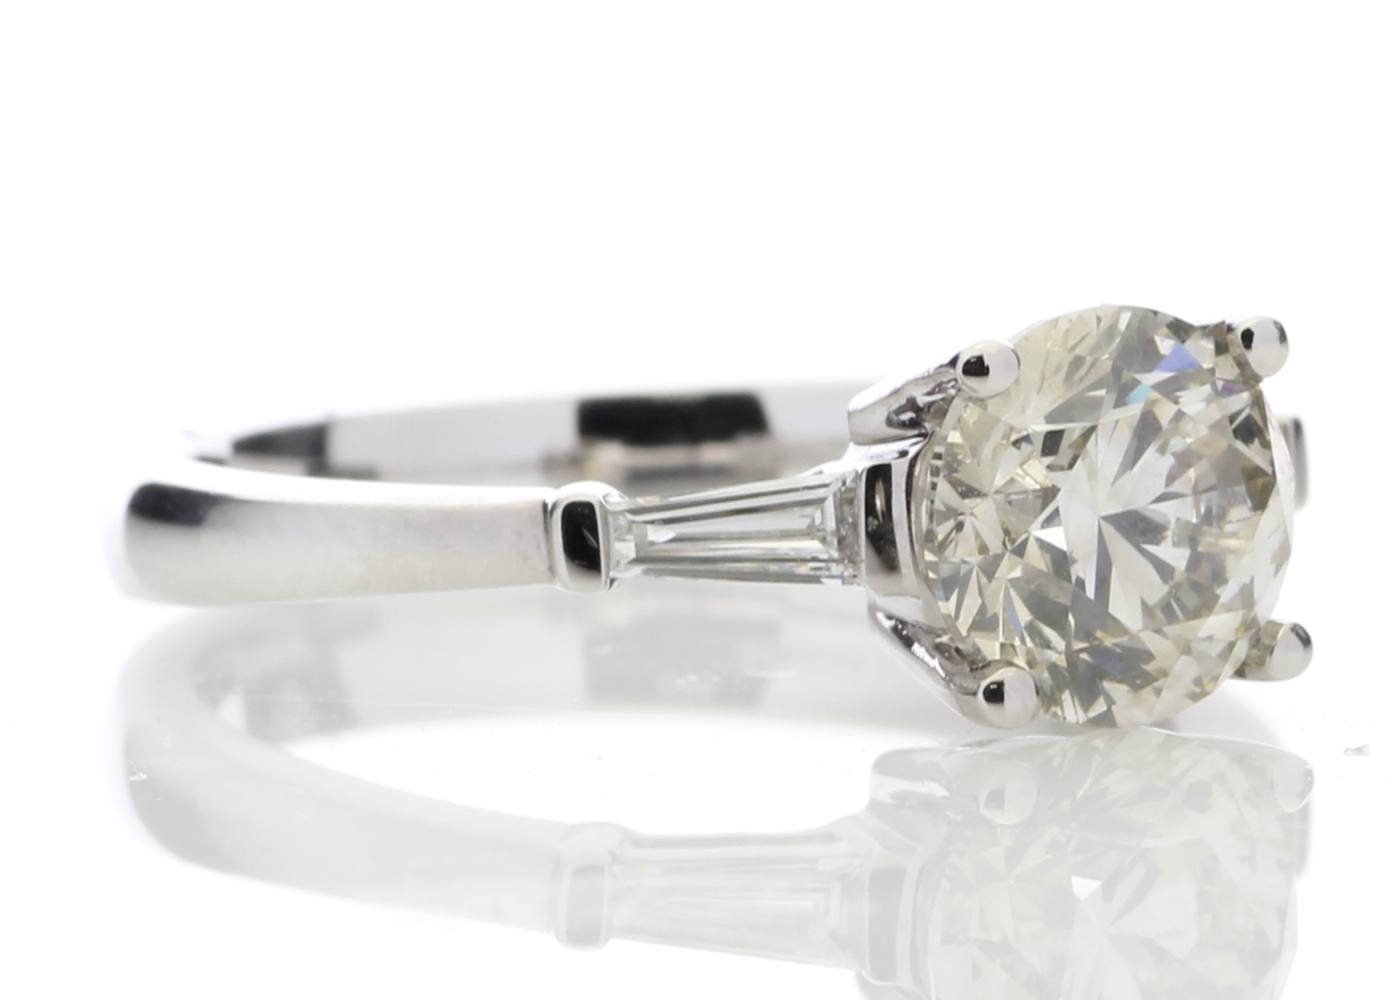 18ct White Gold Single Stone Diamond Ring With Stone Set Shoulders (1.50) 1.62 Carats - Image 4 of 4